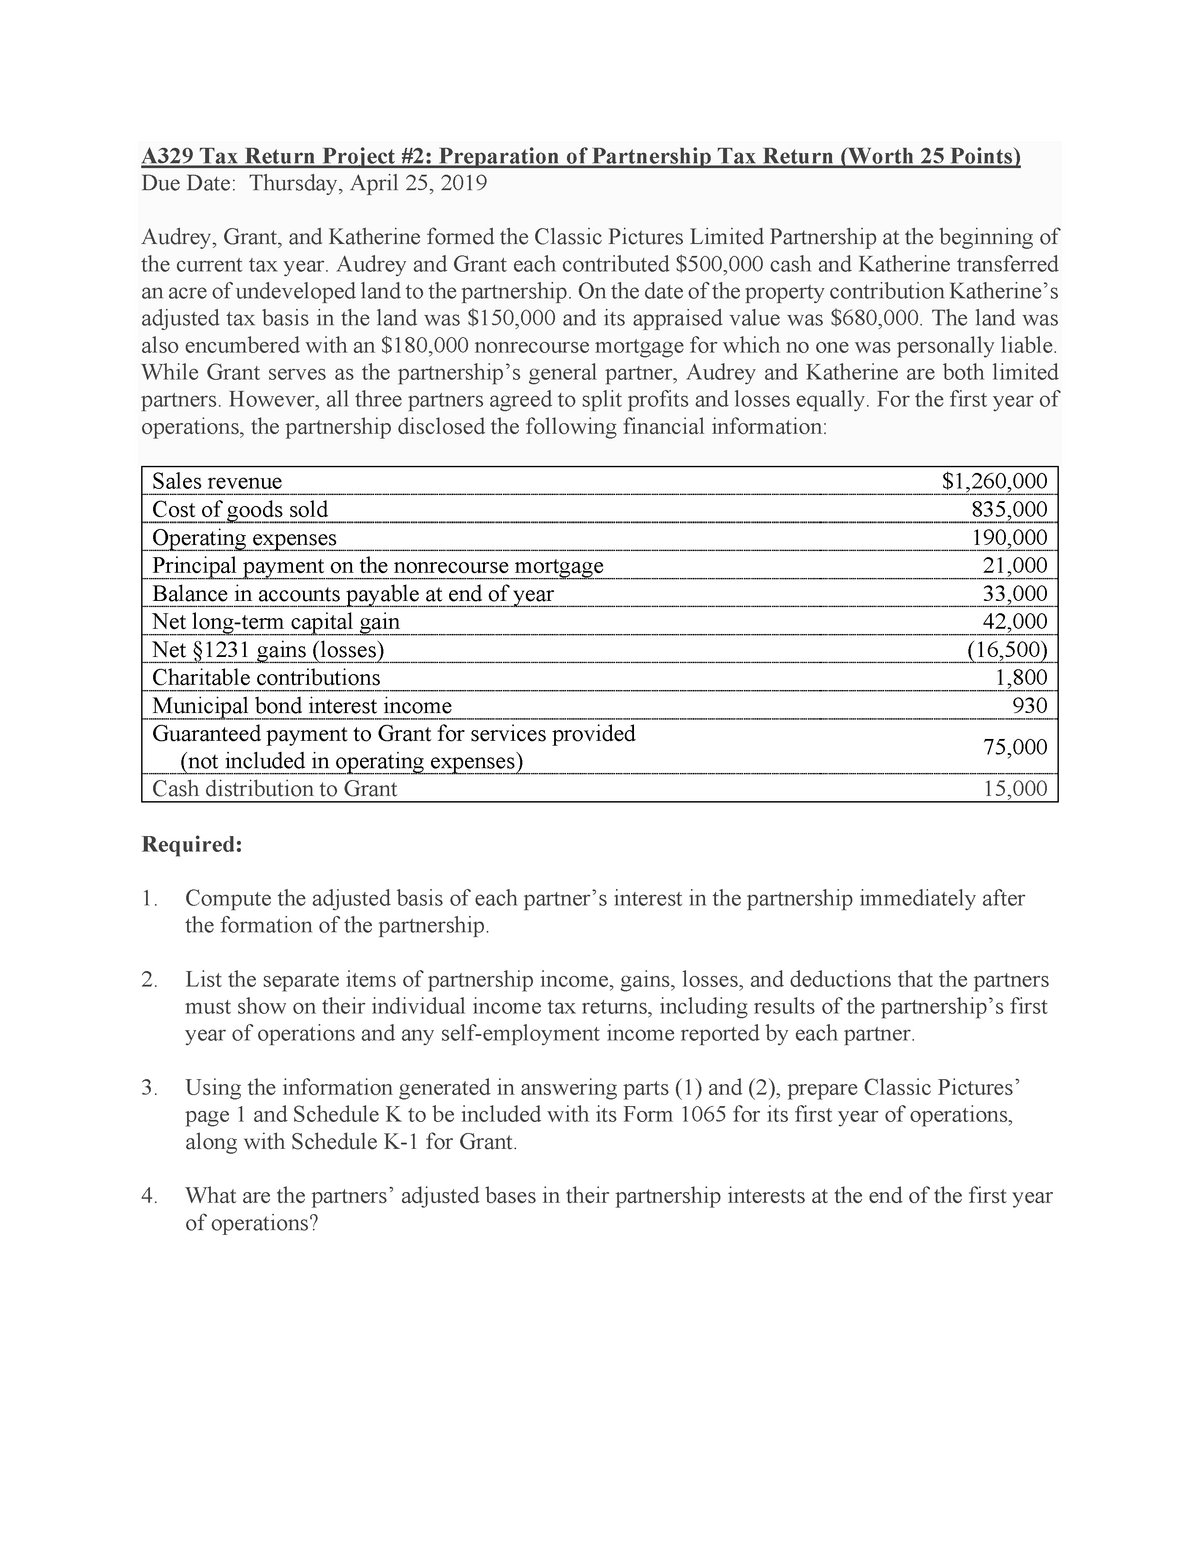 form 1065 charitable contributions  Project 9 Form 9 Spring 9019 - Solutions - BUS-A 399 ...